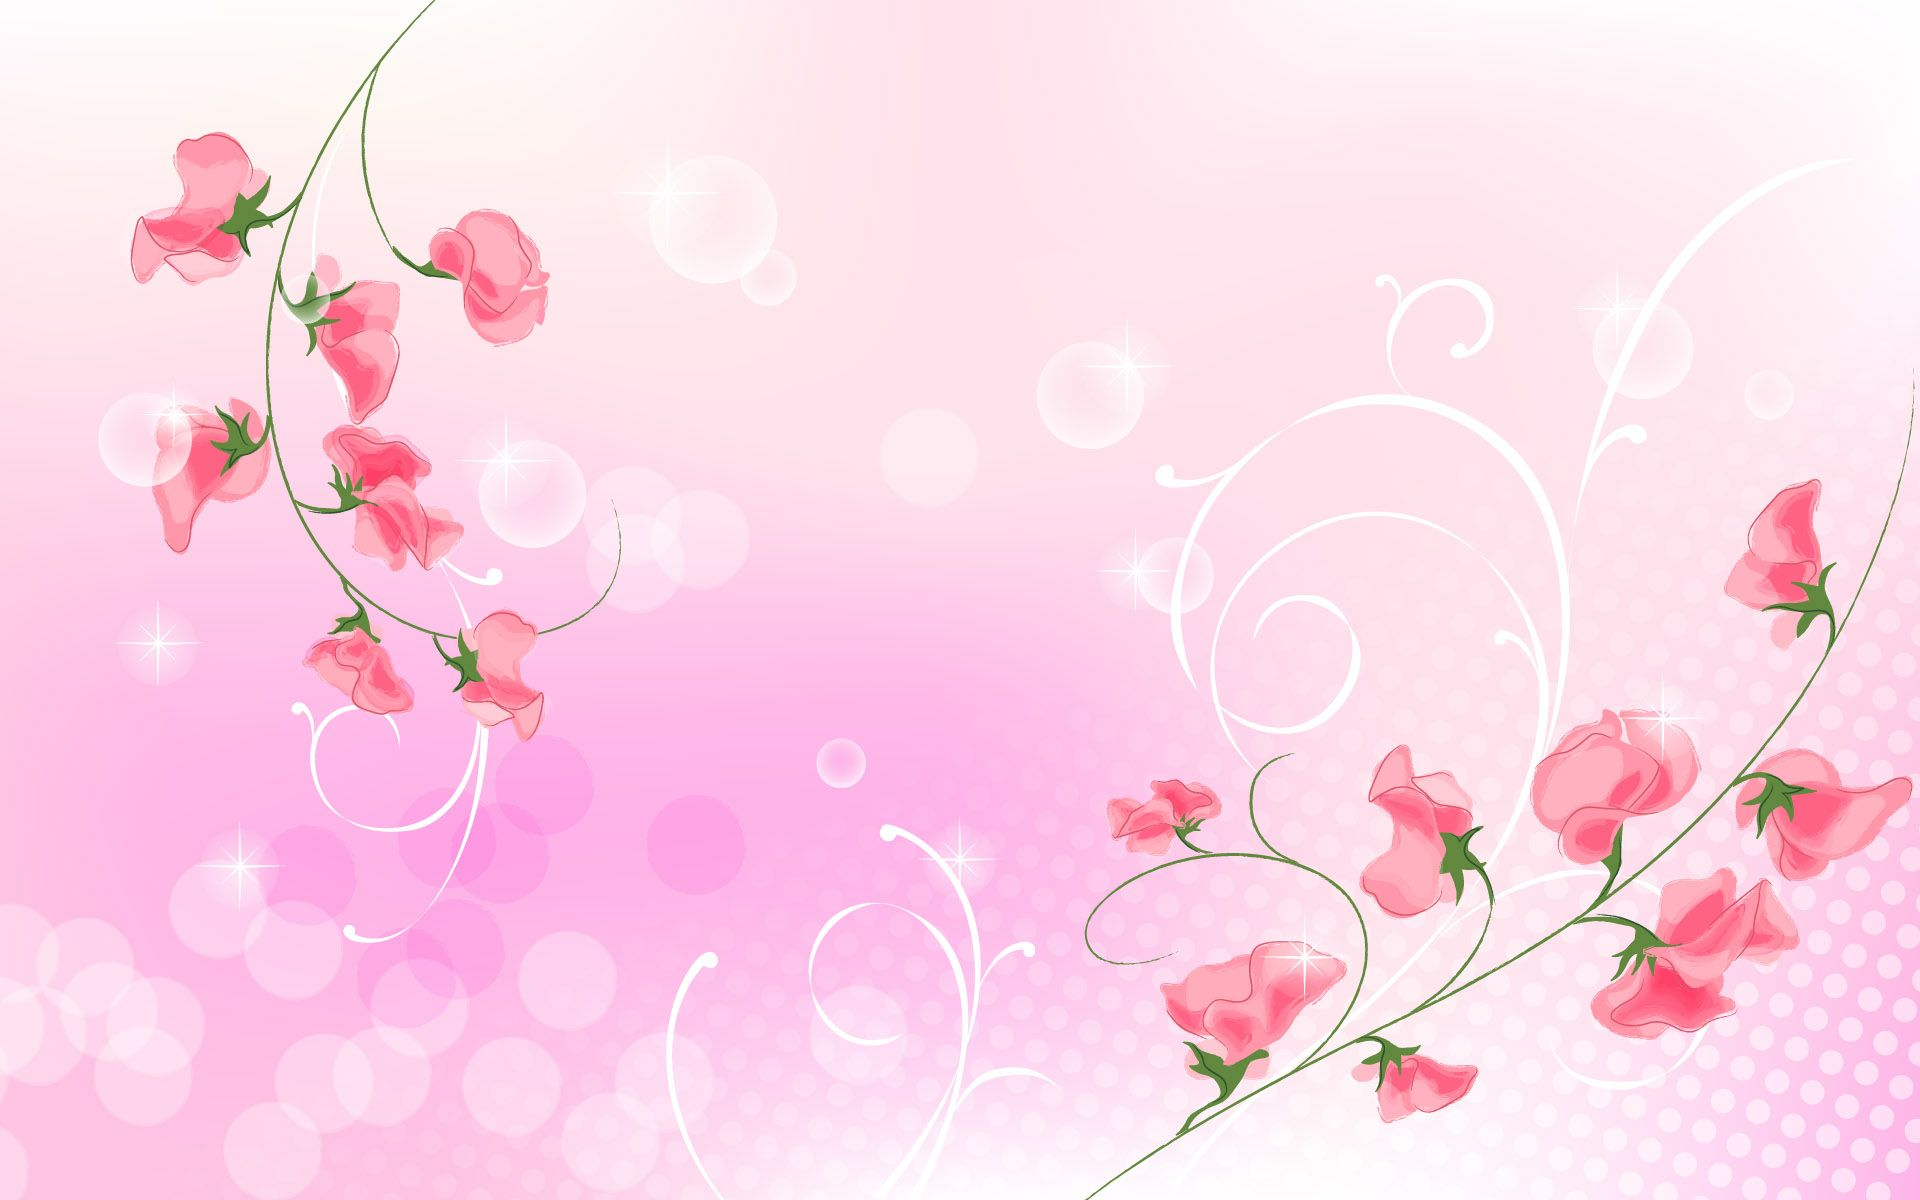 Floral backgrounds flower and light pink background a great flower and light pink background a great fit for each other cartoon mightylinksfo